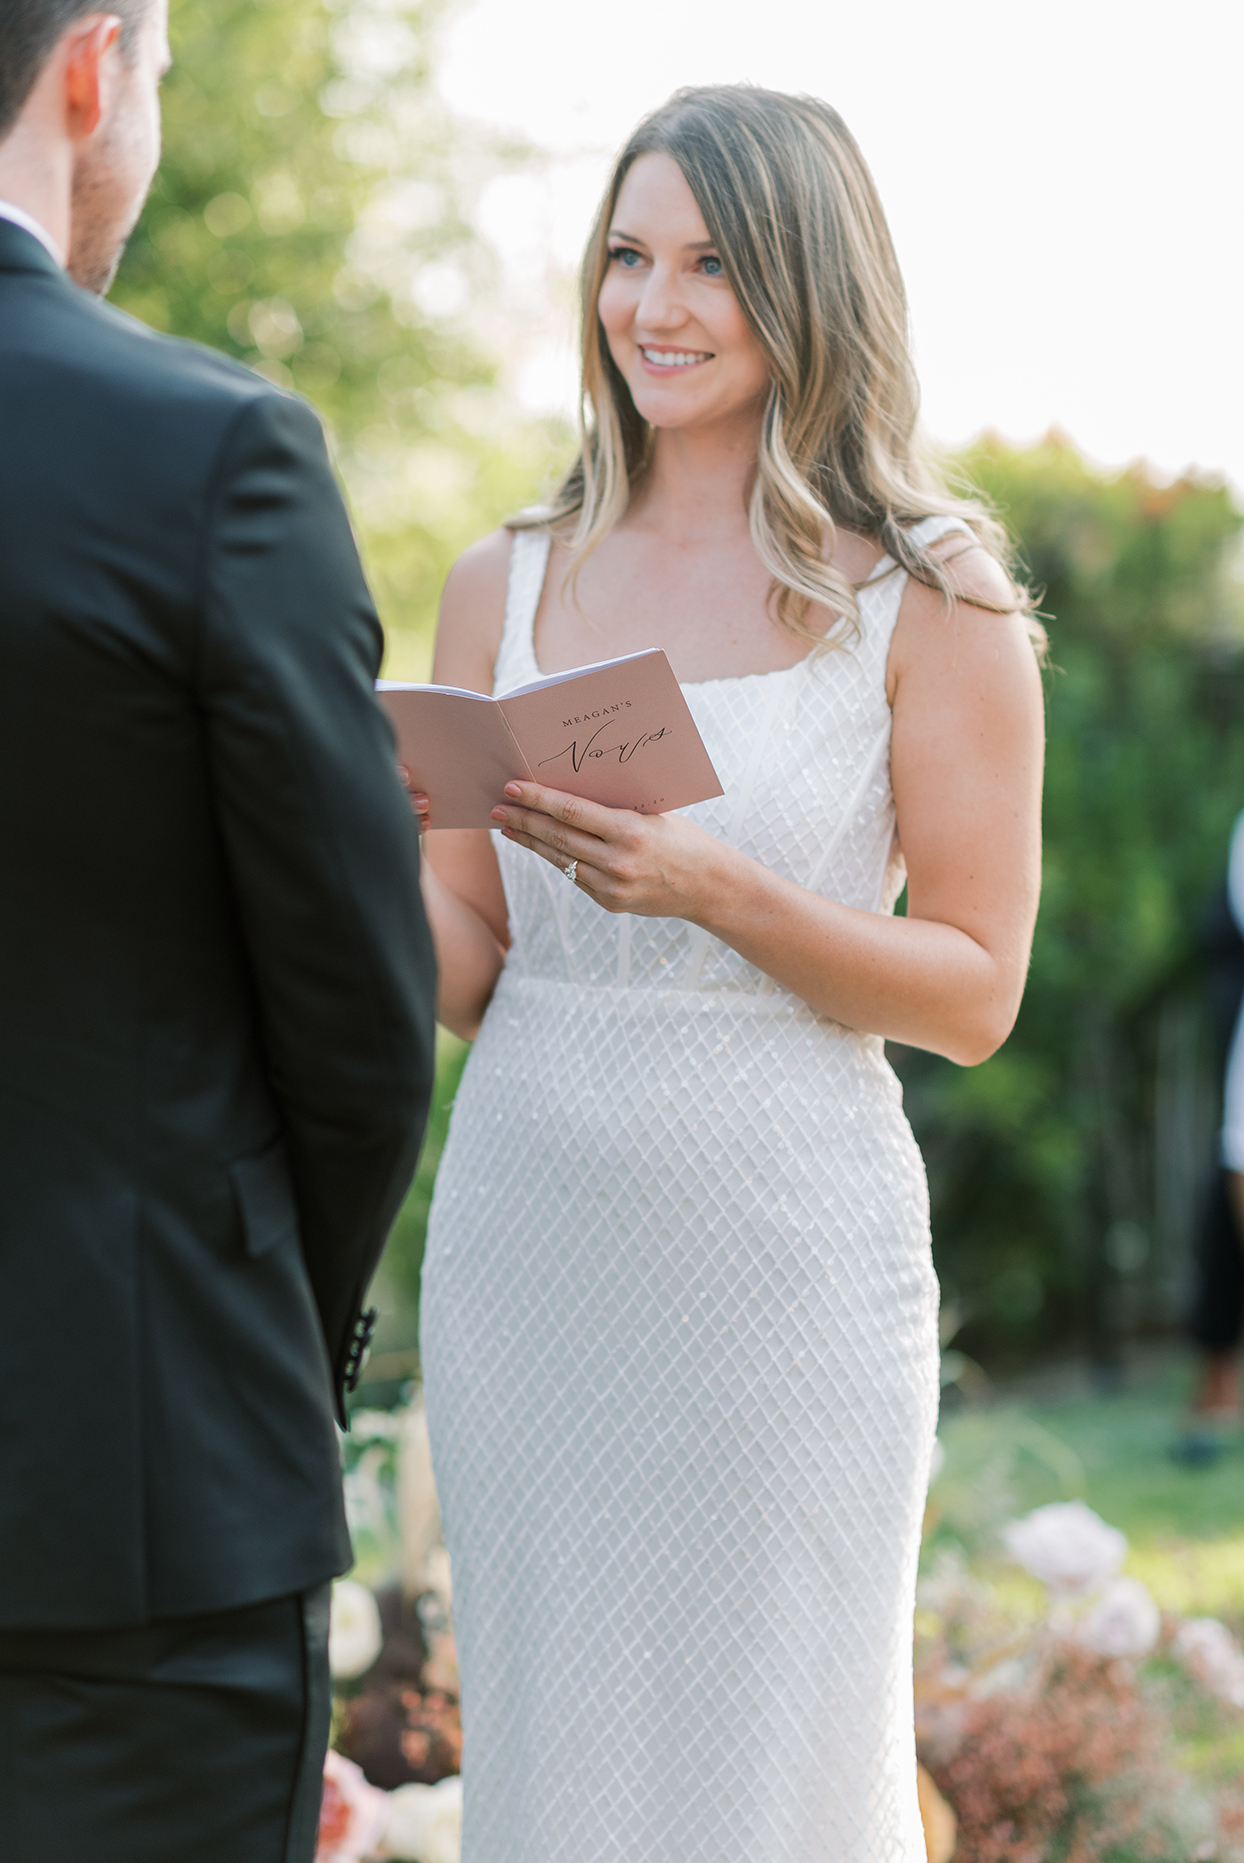 bride sharing vows with groom during backyard wedding ceremony